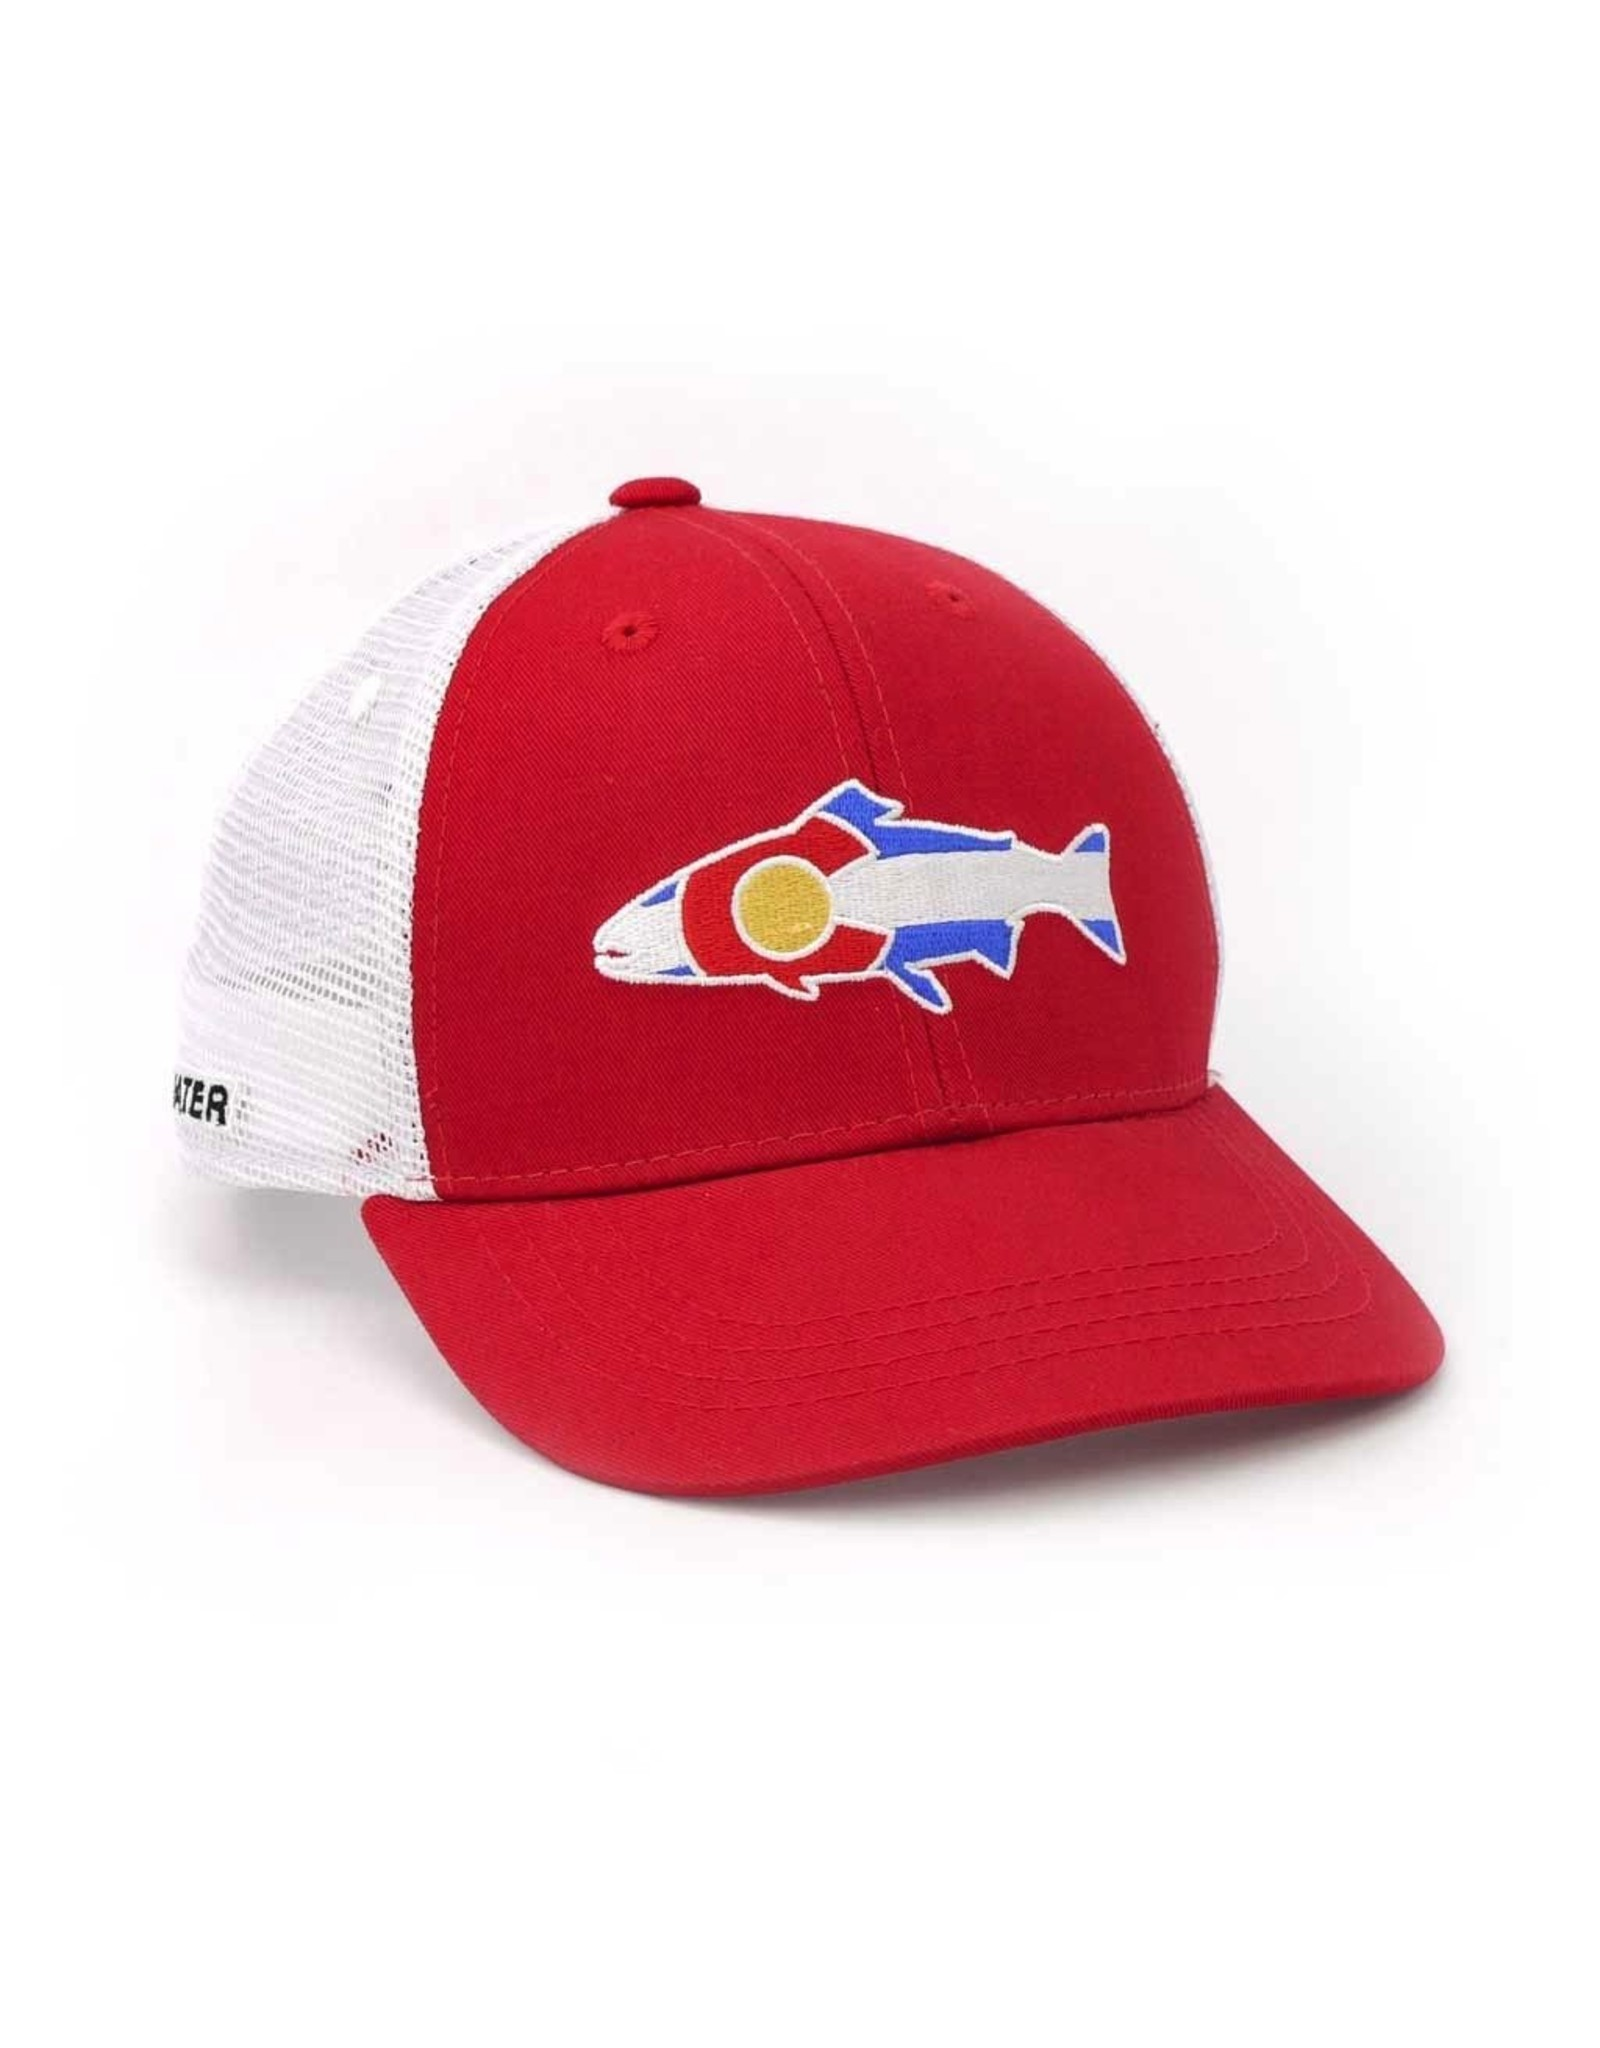 Rep Your Water Rep Your Water Colorado Trout Trucker Lo Pro